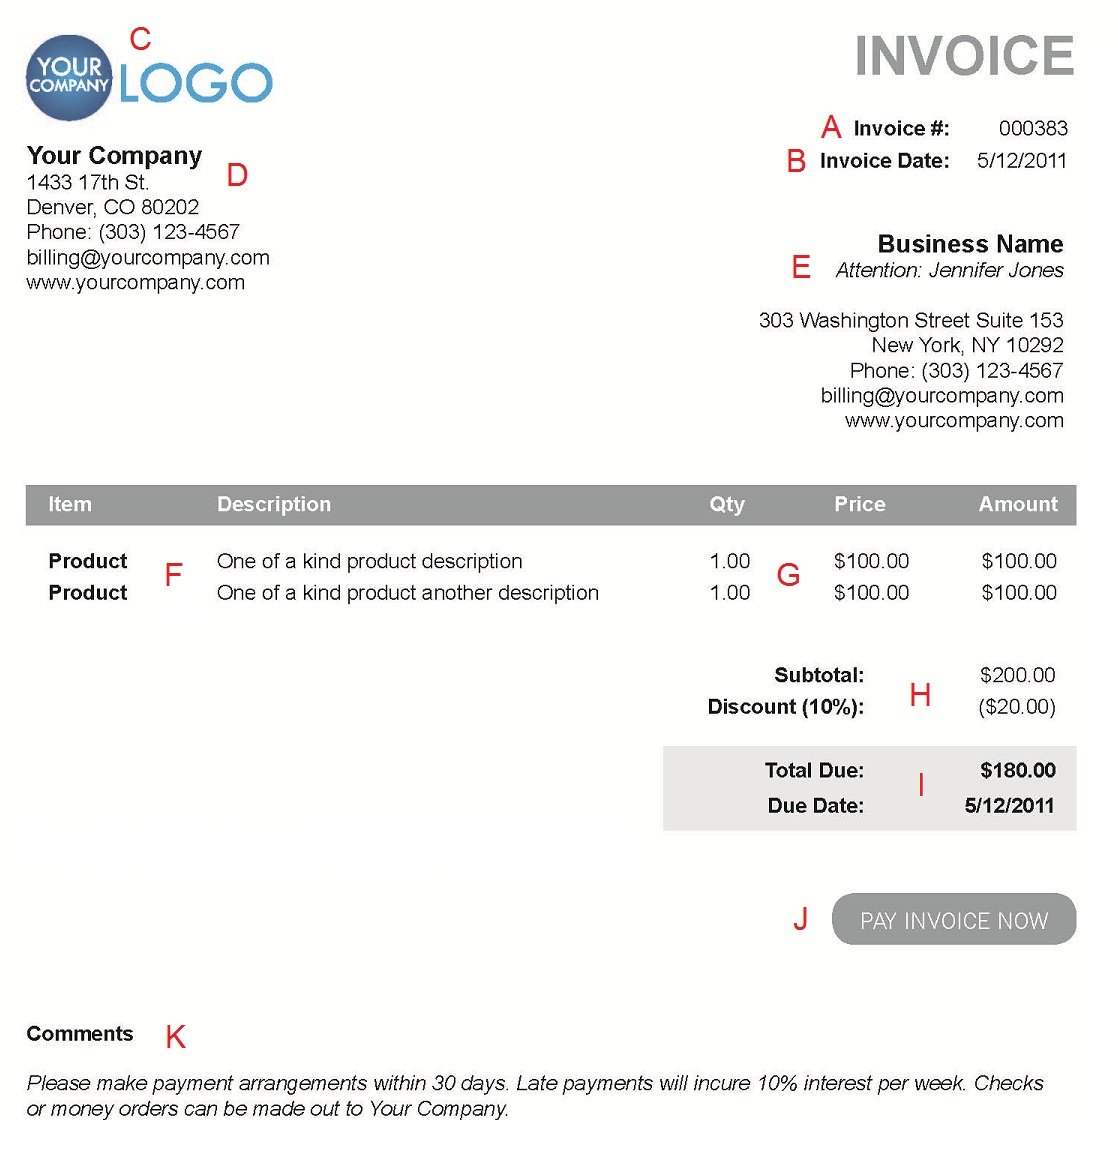 Imagerackus  Wonderful The  Different Sections Of An Electronic Payment Invoice With Lovable A  With Easy On The Eye Receipt Templates Word Also Template For Donation Receipt In Addition Scanning Receipts With Scansnap And Best Receipt Scanner Software As Well As Constructive Receipt Rule Additionally Please Kindly Acknowledge Receipt Of This Email From Paysimplecom With Imagerackus  Lovable The  Different Sections Of An Electronic Payment Invoice With Easy On The Eye A  And Wonderful Receipt Templates Word Also Template For Donation Receipt In Addition Scanning Receipts With Scansnap From Paysimplecom